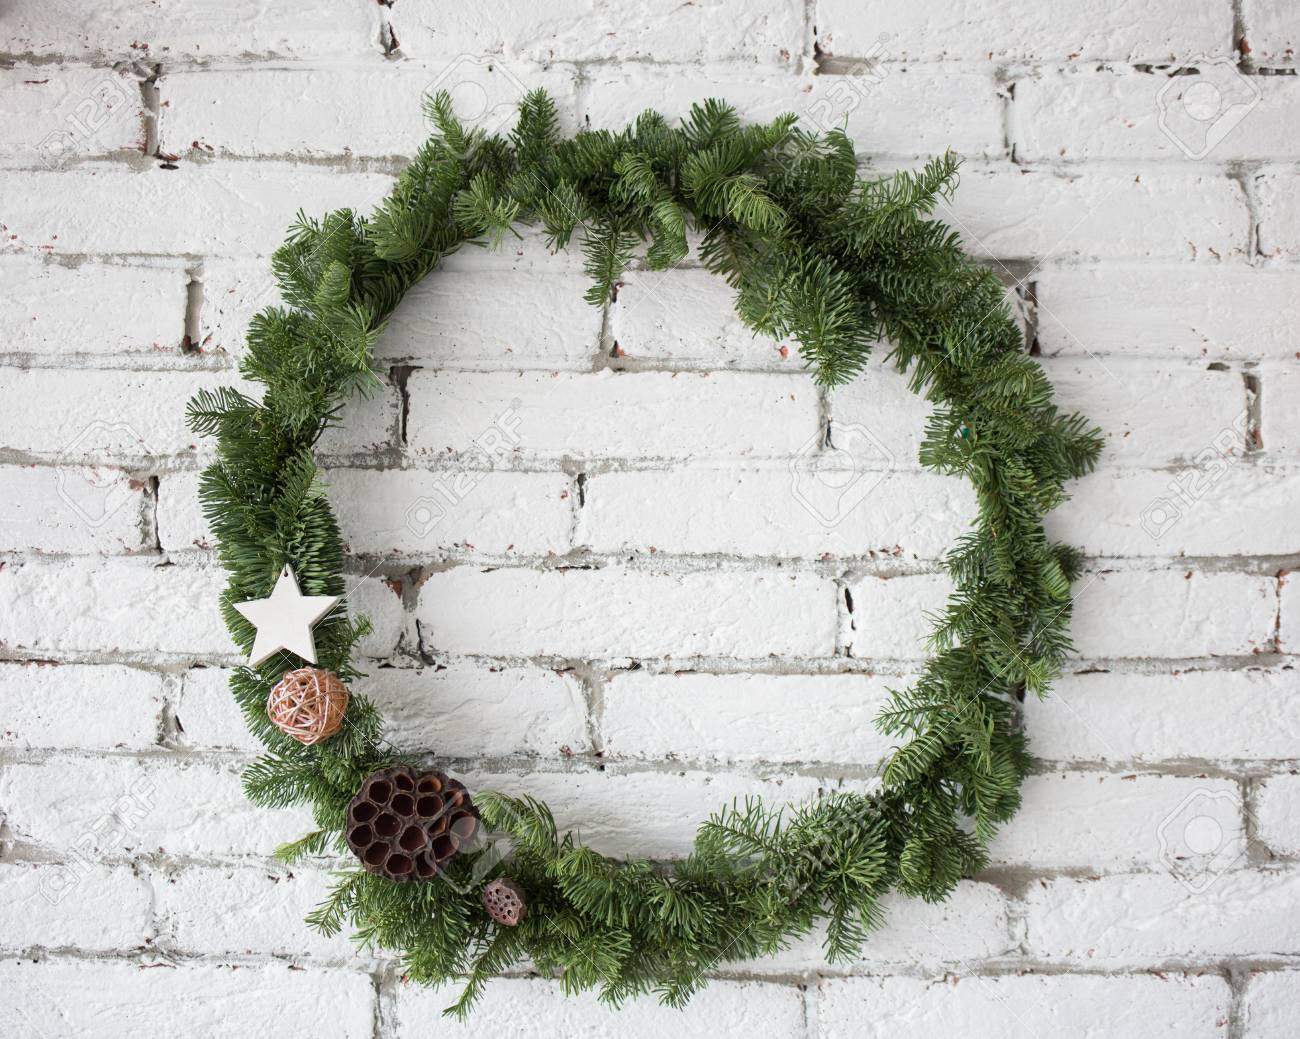 closeup view of round elegant christmas wreath hanging on white brick wall wreath decorated with